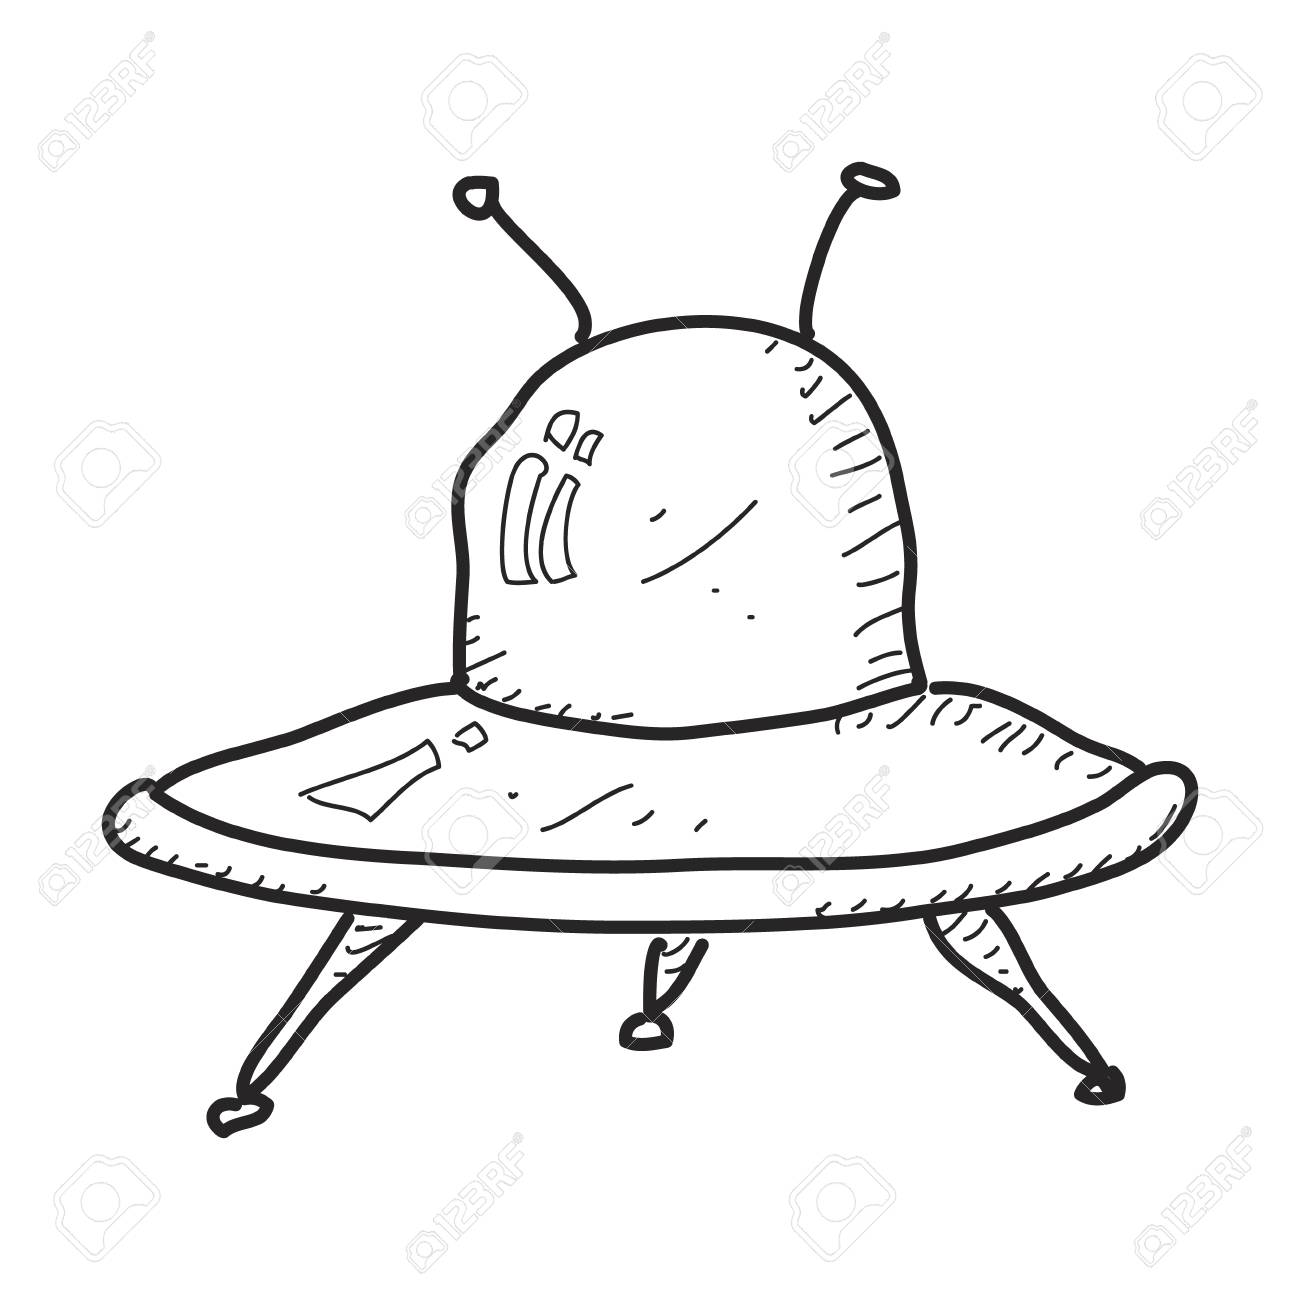 1300x1300 Simple Hand Drawn Doodle Of A Spaceship Royalty Free Cliparts